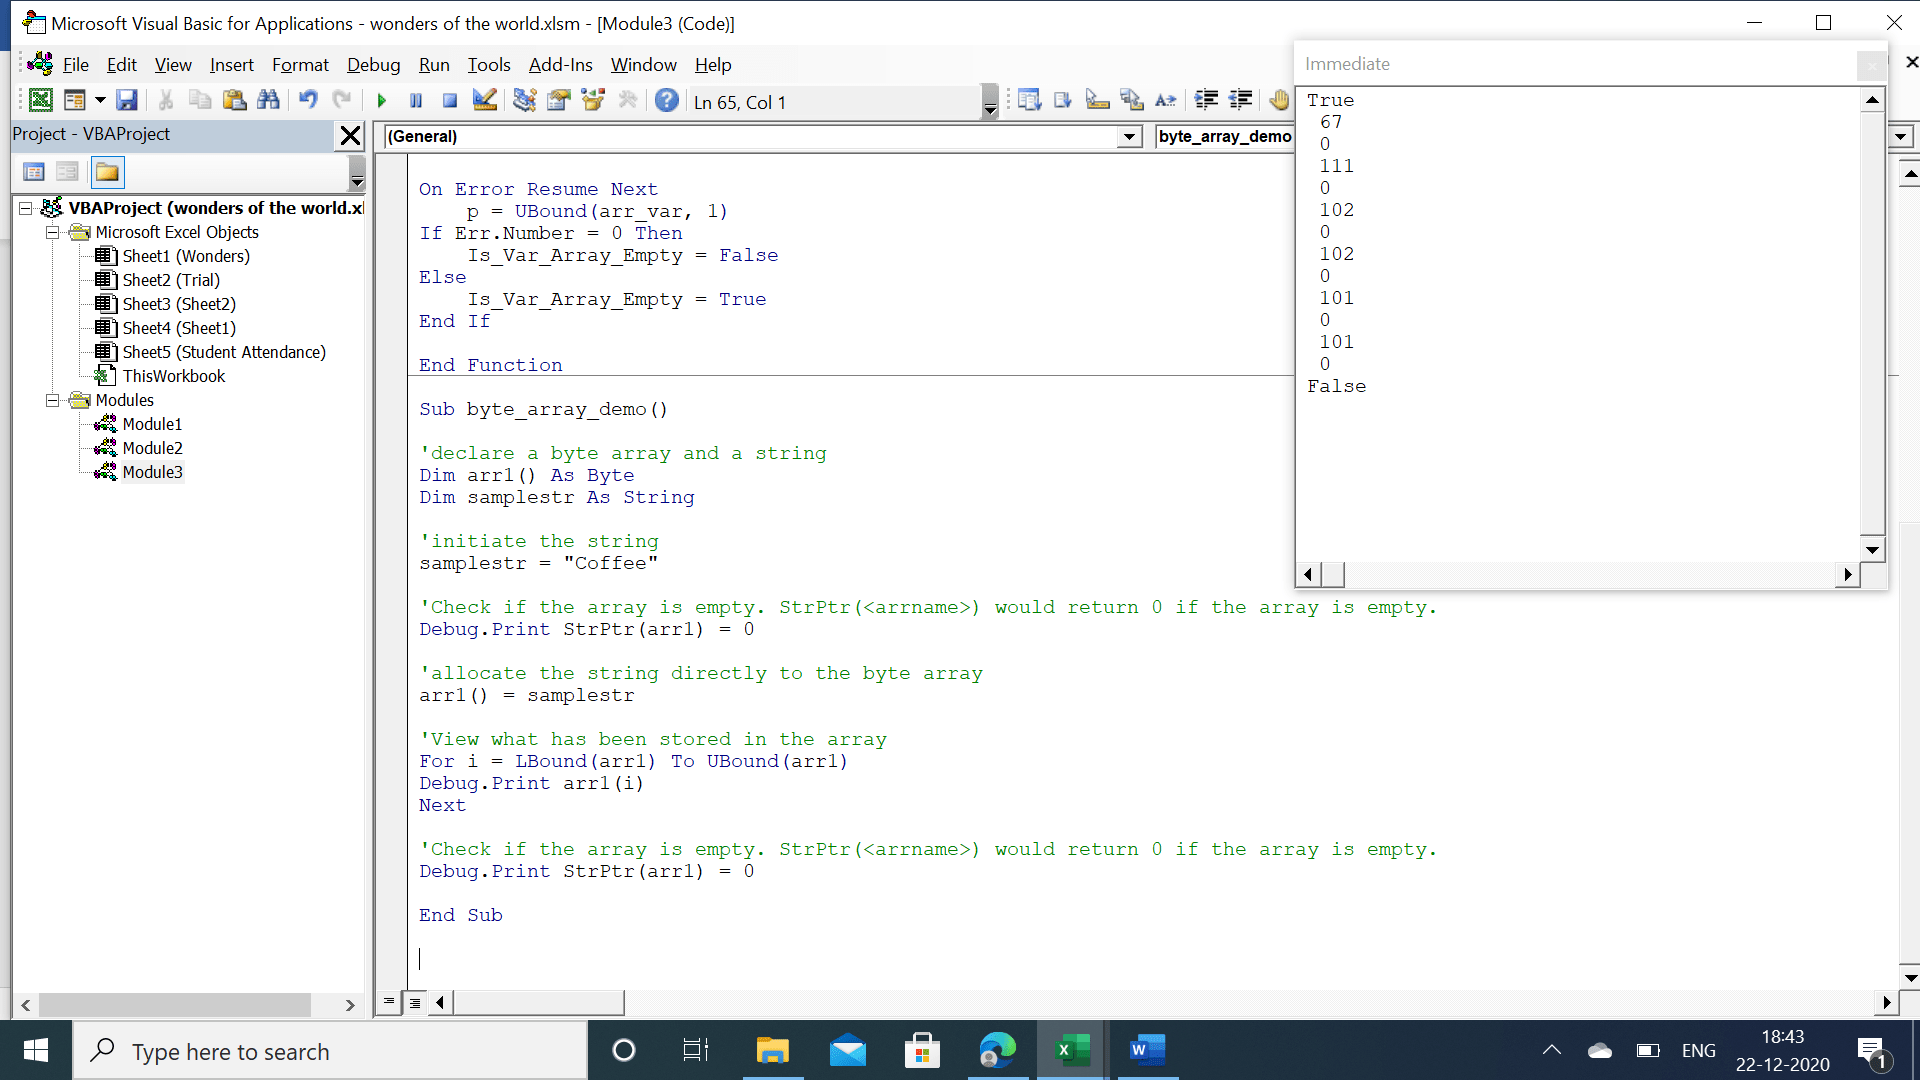 Results from checking array using strptr function.